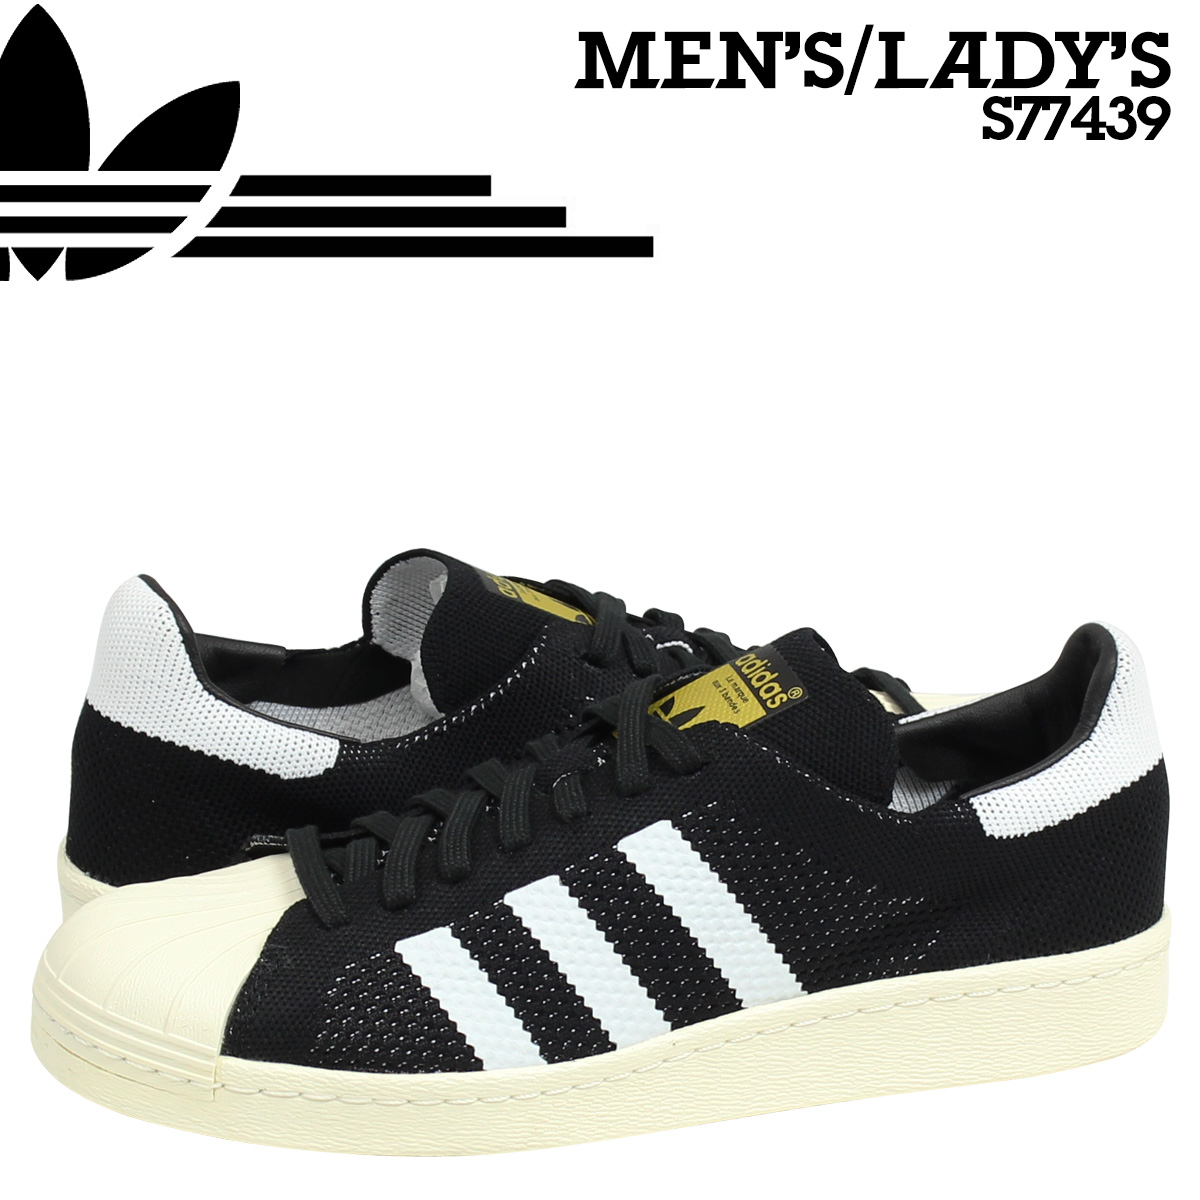 best sneakers b49f6 7d30d ALLSPORTS  Adidas originals adidas Originals mens Womens SUPERSTAR 80S  CONSORTIUM PRIME KNIT sneakers Super Star Consortium Prime knit S77439 black  white ...